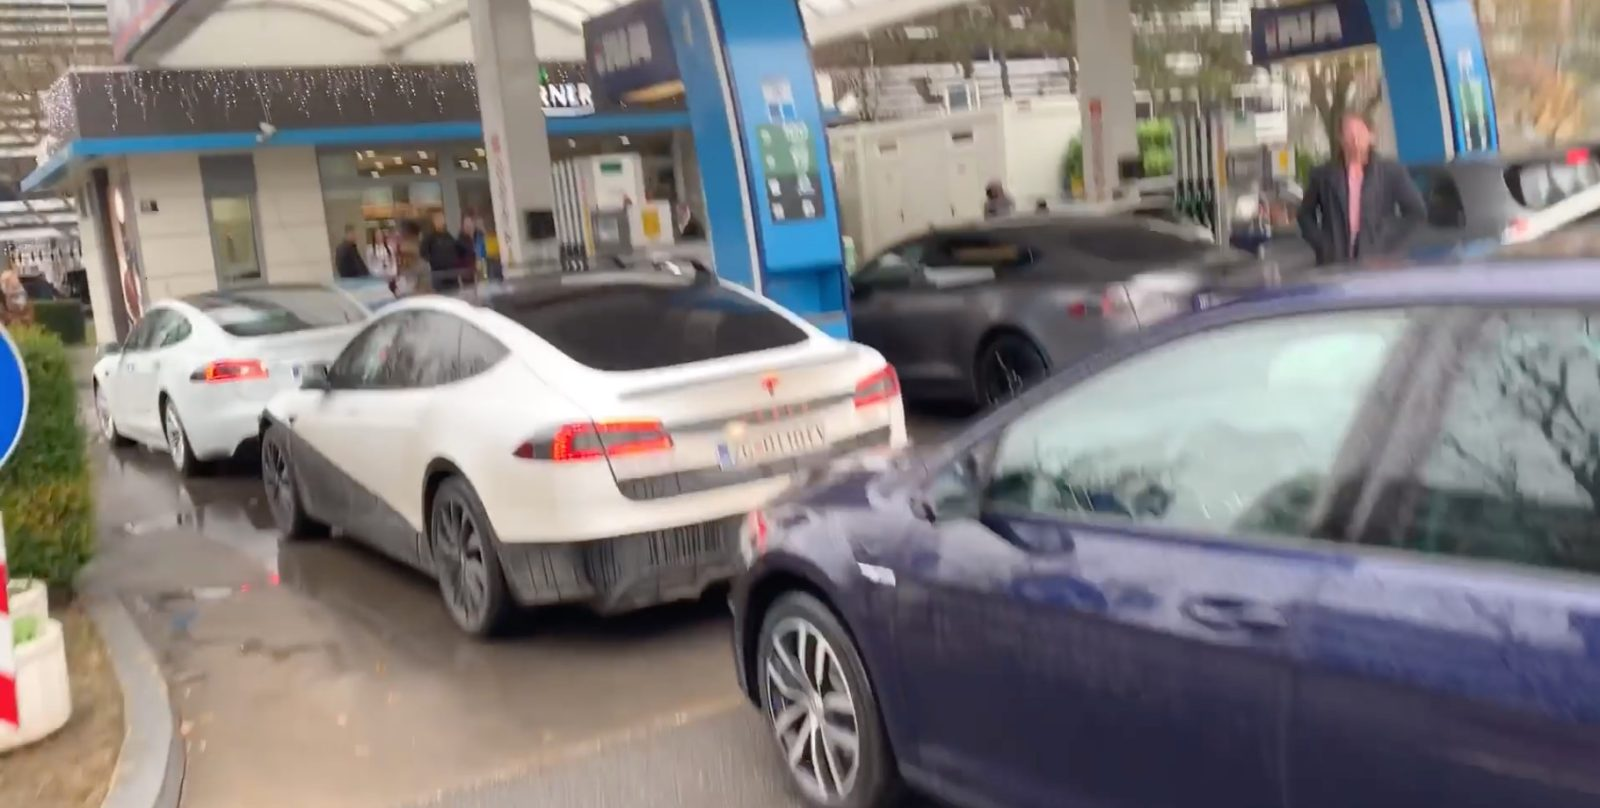 Tesla and other EVs block gas station in protest against charging staton Icing